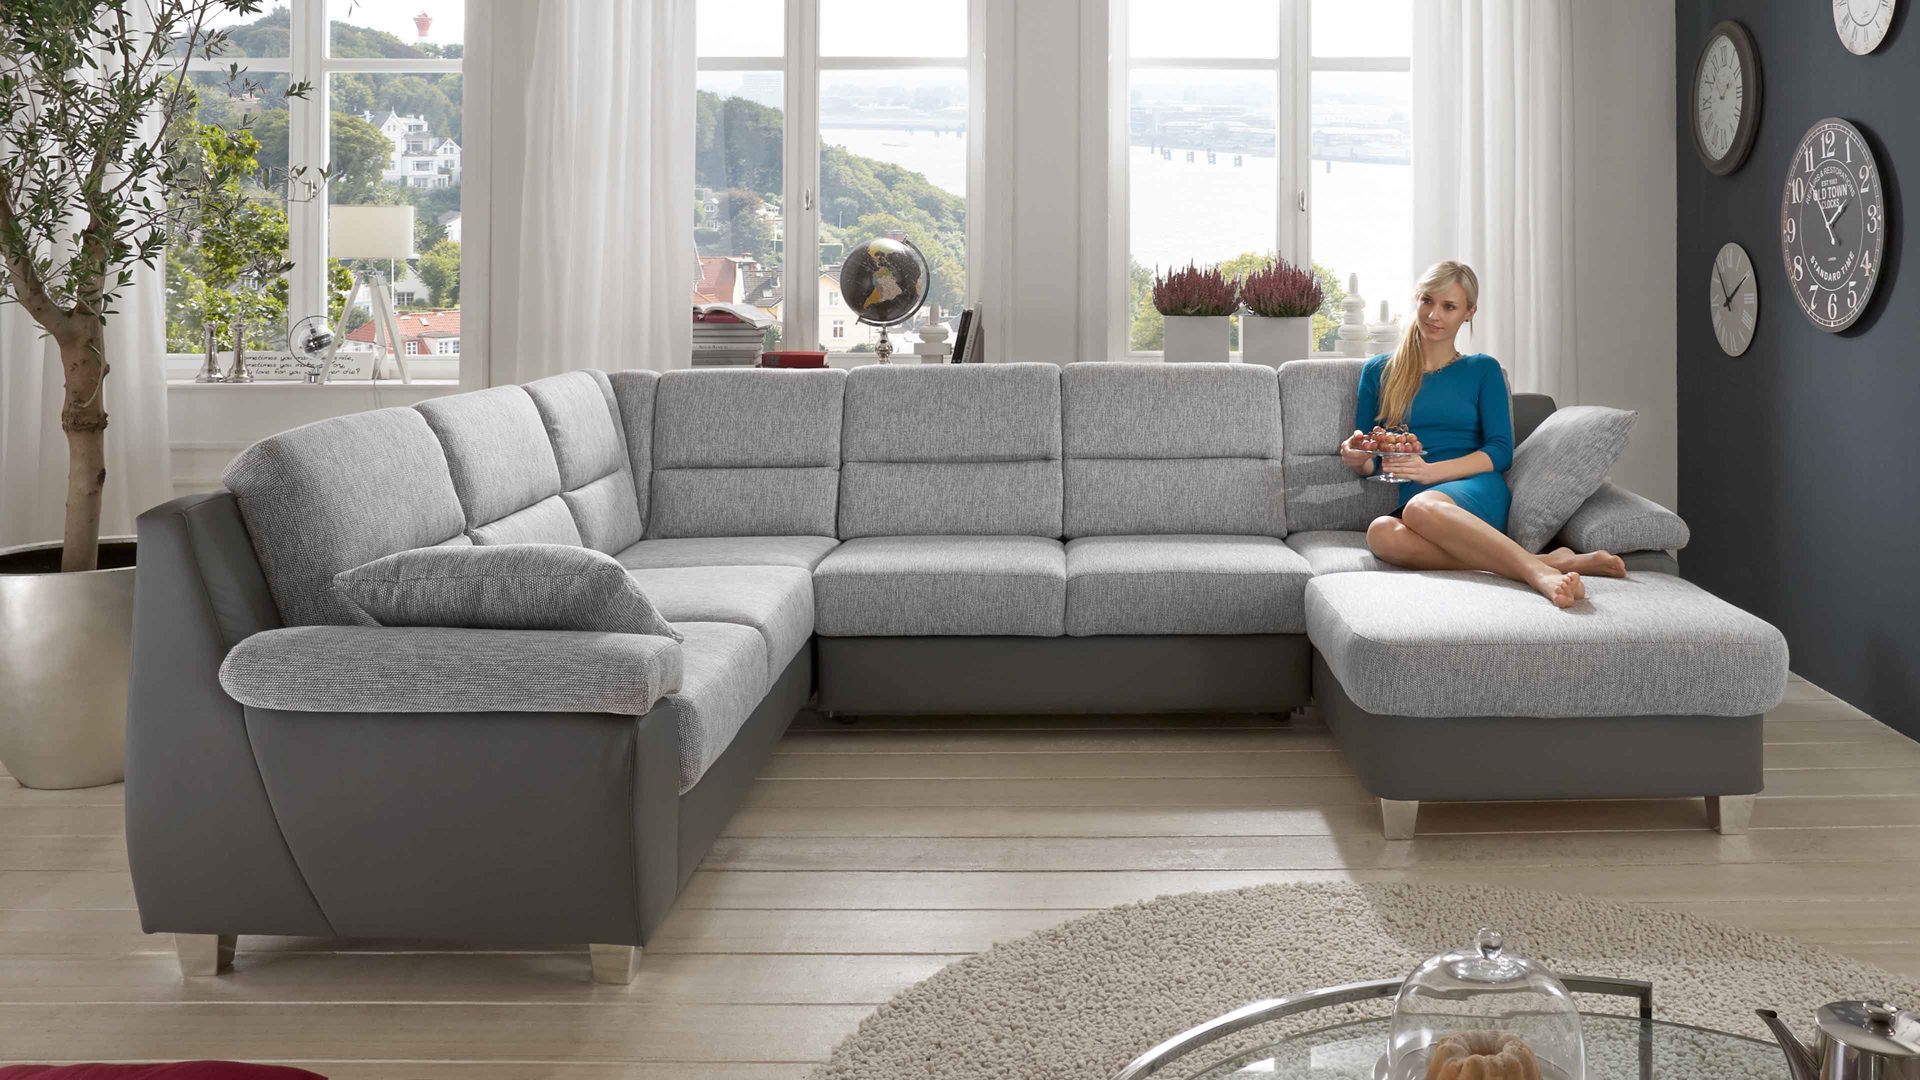 Ecksofa u form  Sofa In U Form. Gunstige Sofas In U Form Details About Ledersofa ...